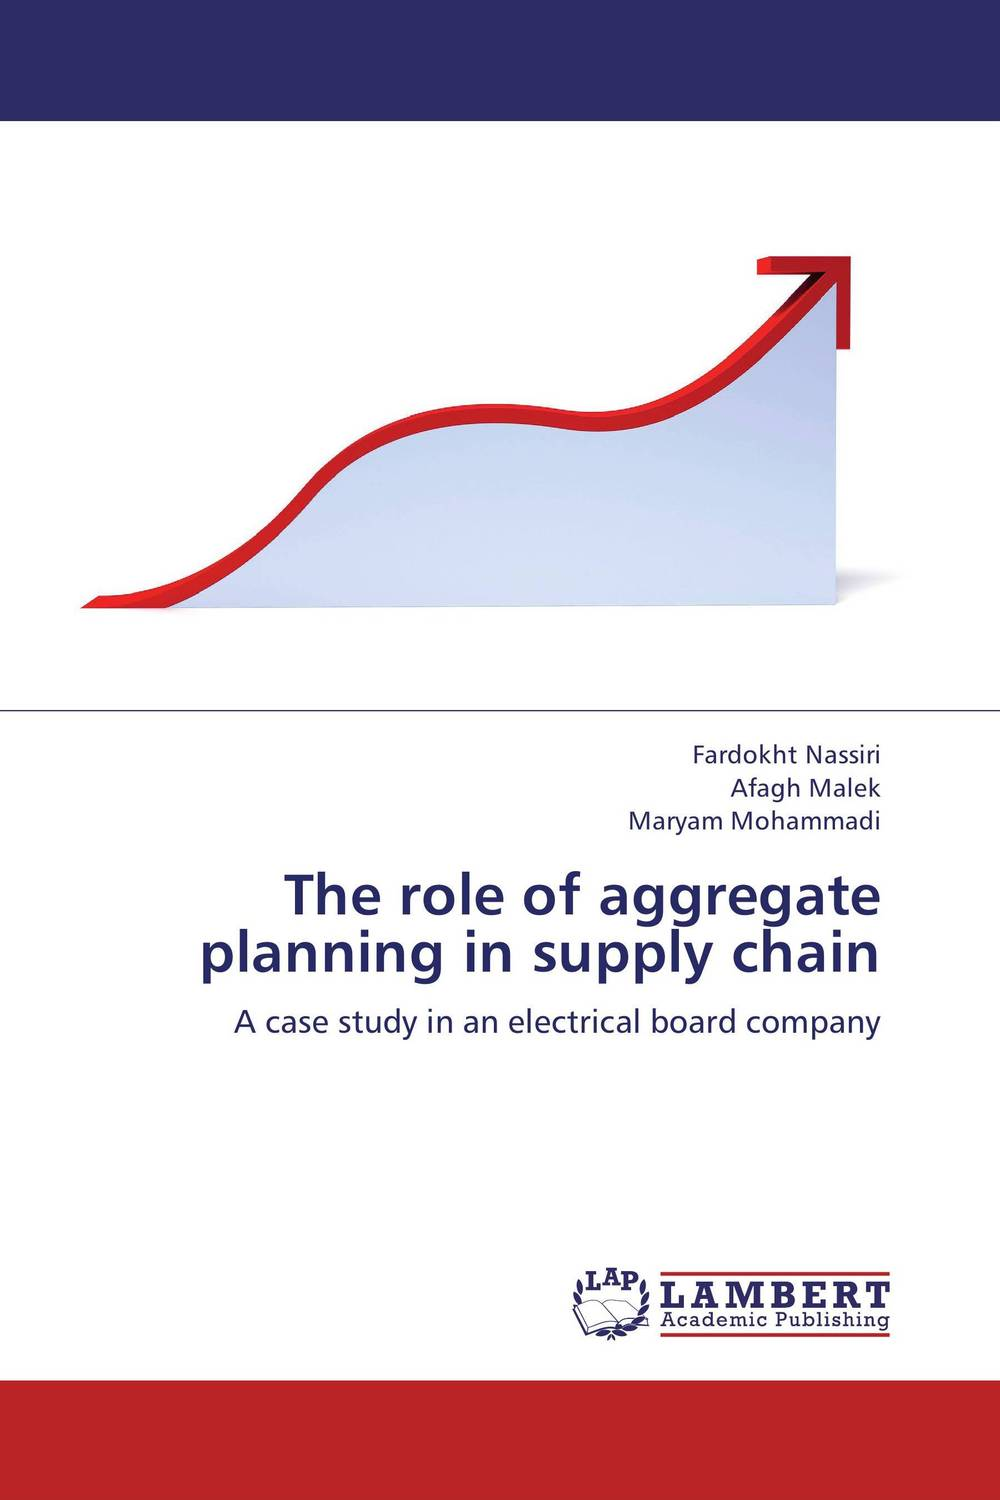 The role of aggregate planning in supply chain robert davis a demand driven inventory optimization and replenishment creating a more efficient supply chain